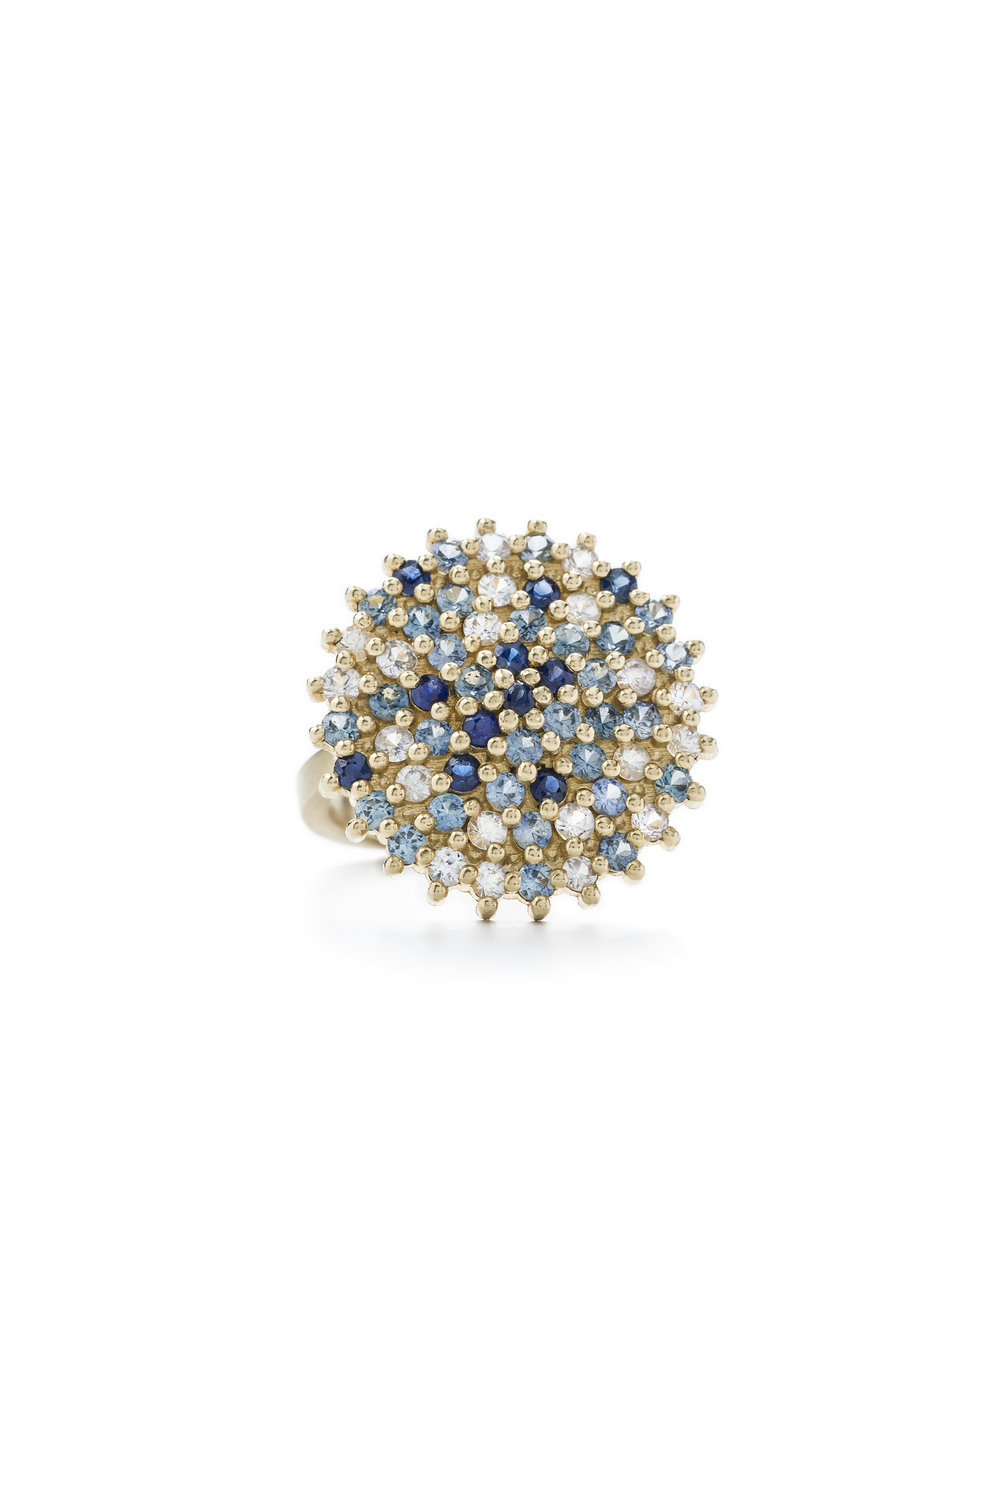 Multi coloured sapphire star cocktail ring in gold, £4500